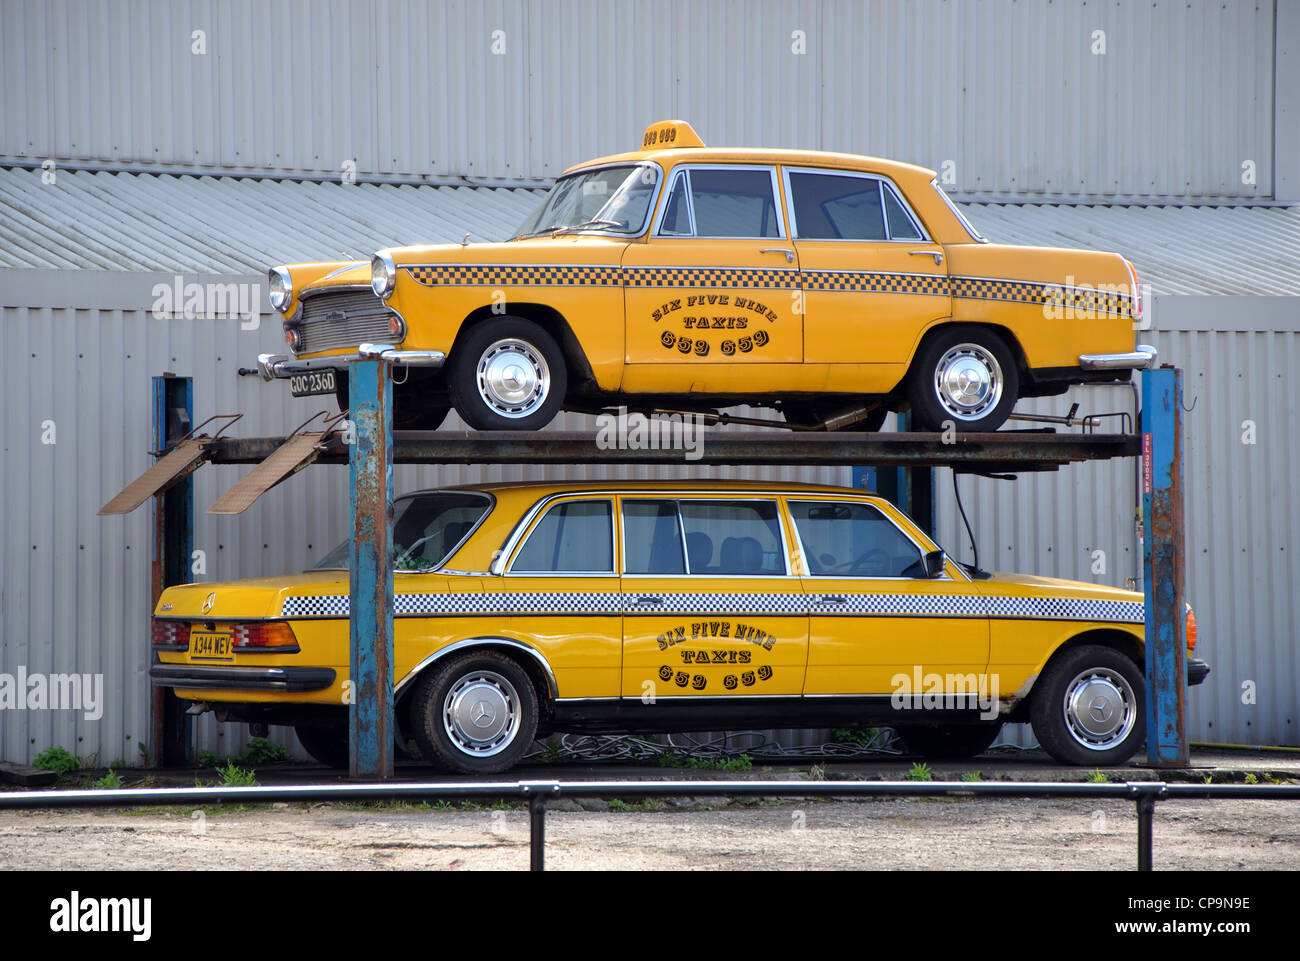 New York style yellow taxi cabs parked on ramp, York,England, UK - Stock Image